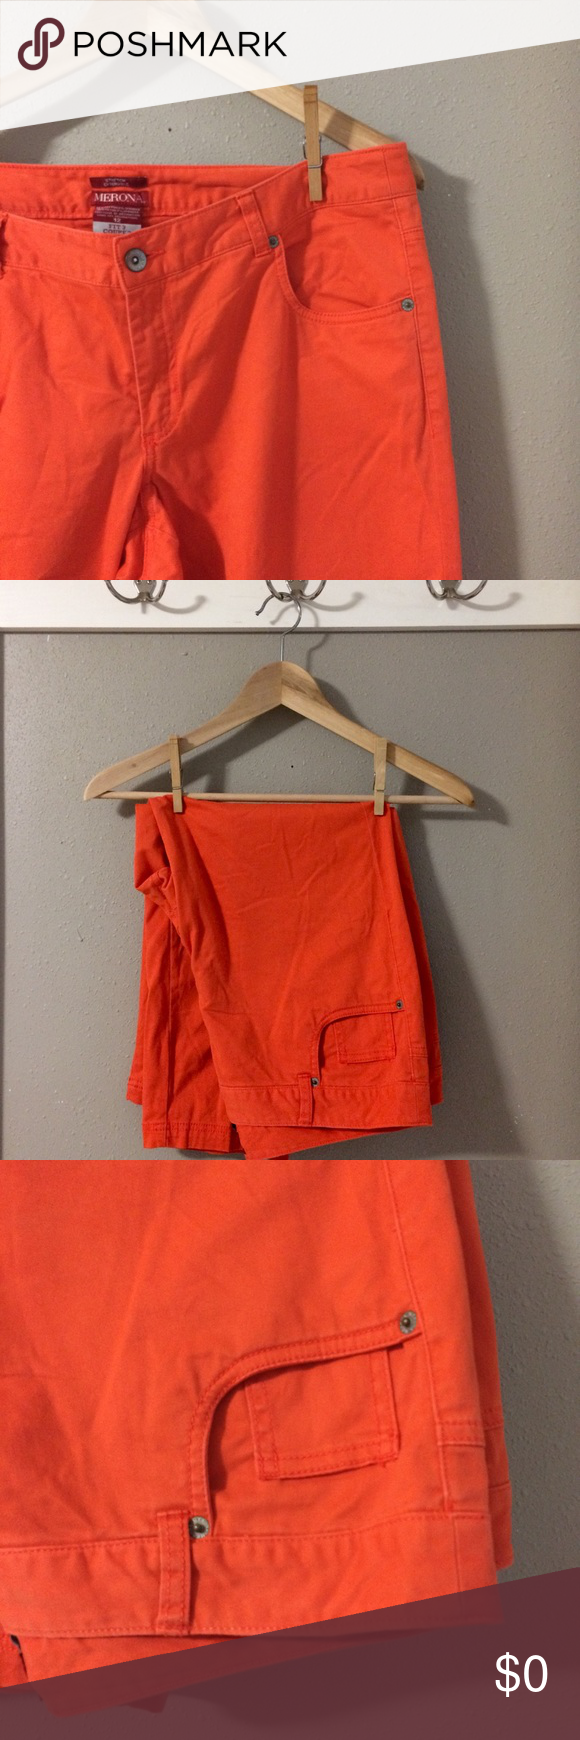 New Fall Inventory Opening August 20 New Fall Inventory Opening August 20. Merona Size 12, fit 2 relaxed fit Capri pants. Bright orange, perfect fall color! So soft! Excellent pre-loved condition. Bundle for additional discounts and seller offers. Merona Pants Capris